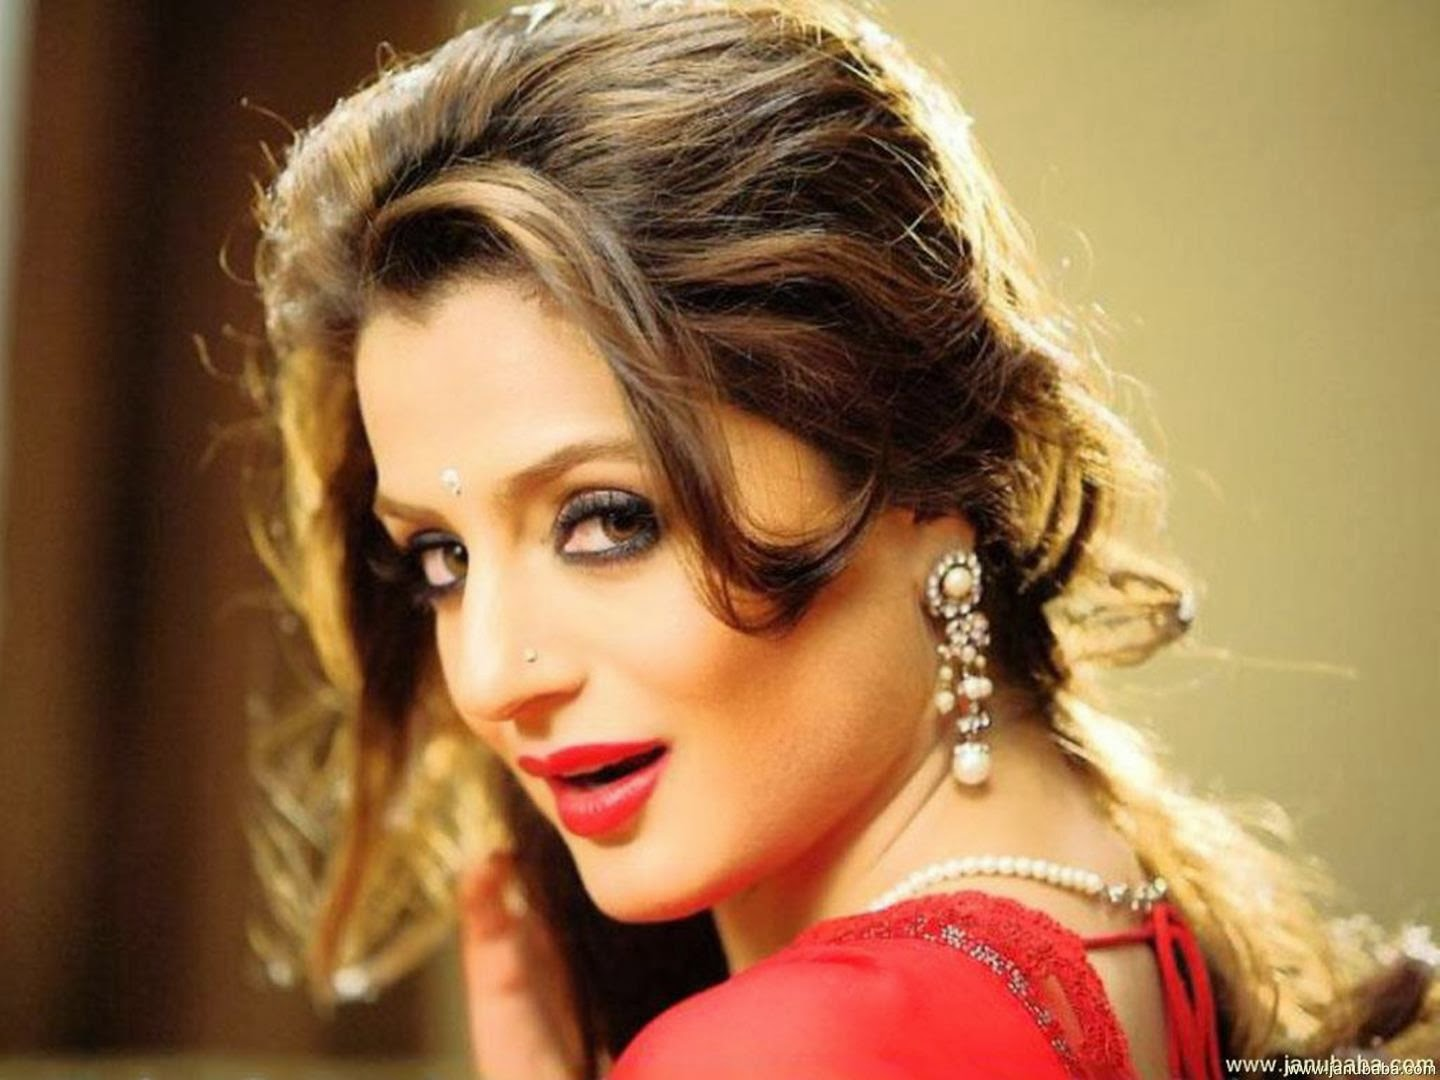 Amisha Patel Wallpaperamisha Patel Beautiful Wallpaper -2651